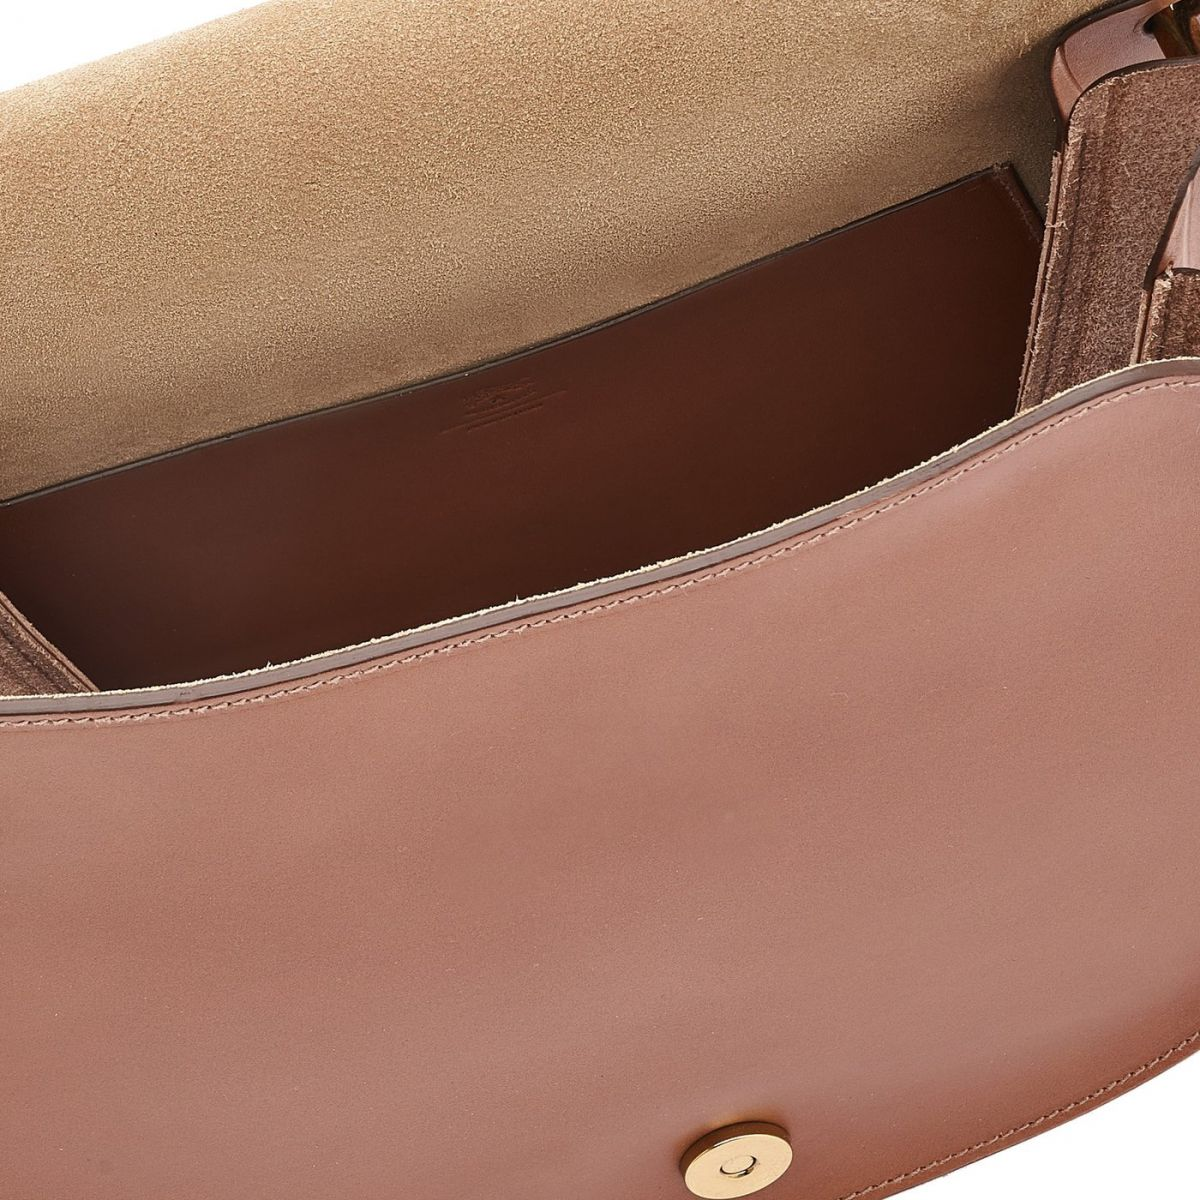 Women's Crossbody Bag in Cowhide Leather color Chocolate - Consuelo line BCR193 | Details